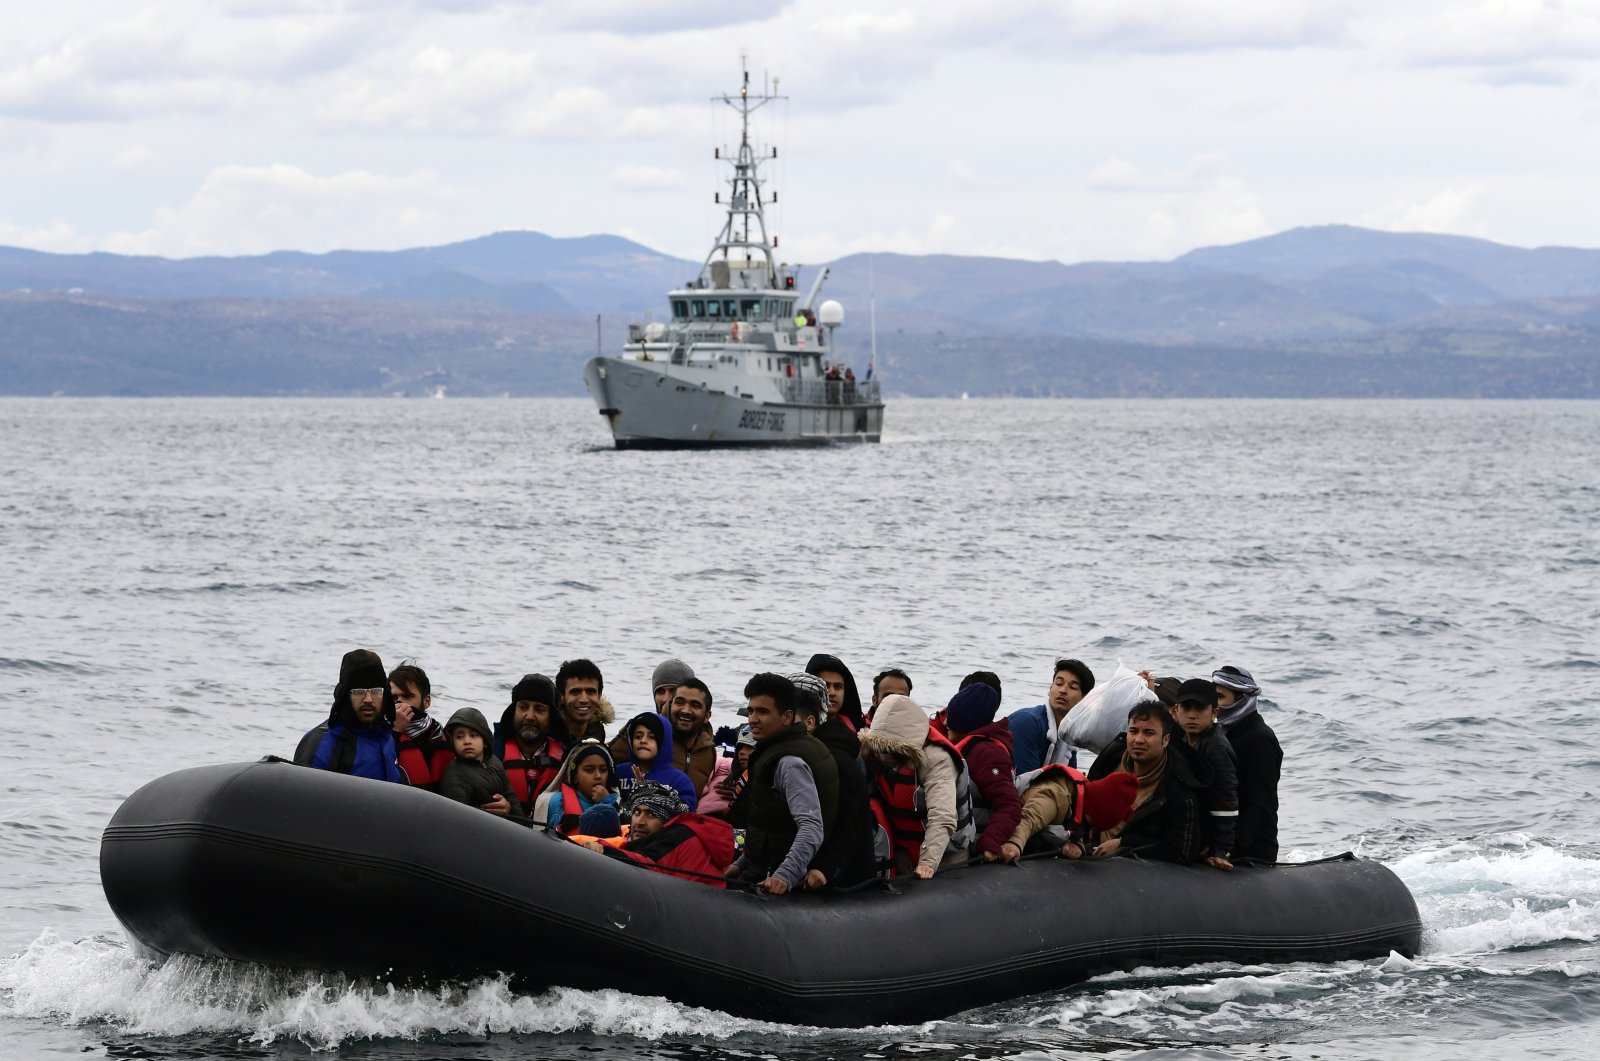 Migrants arrive on a dinghy accompanied by a Frontex vessel at the village of Skala Sikaminias, on the Greek island of Lesbos, after crossing the Aegean Sea from Turkey, Feb. 28, 2020. (AP Photo)